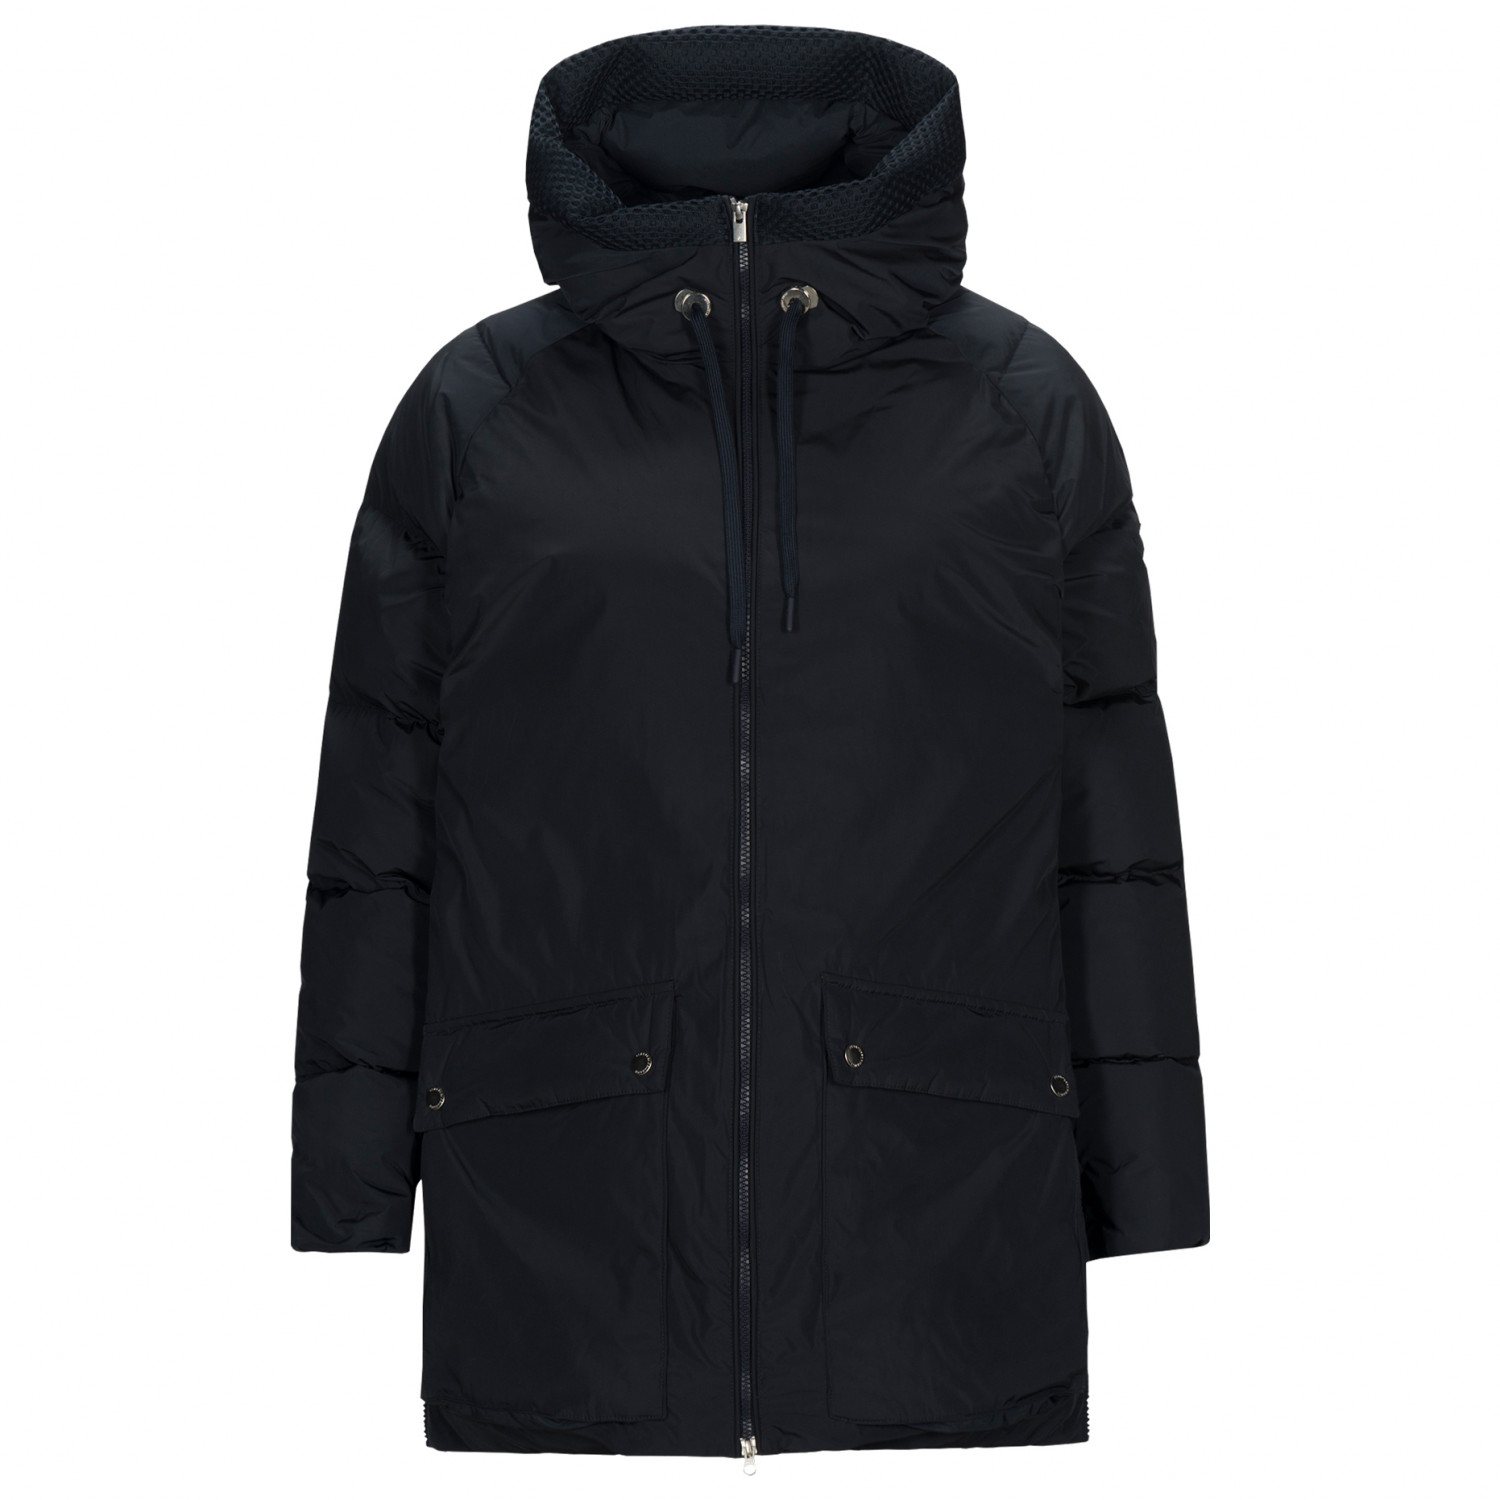 35ed27a6000 Peak Performance Stella Jacket - Winter jacket Women's | Free EU ...